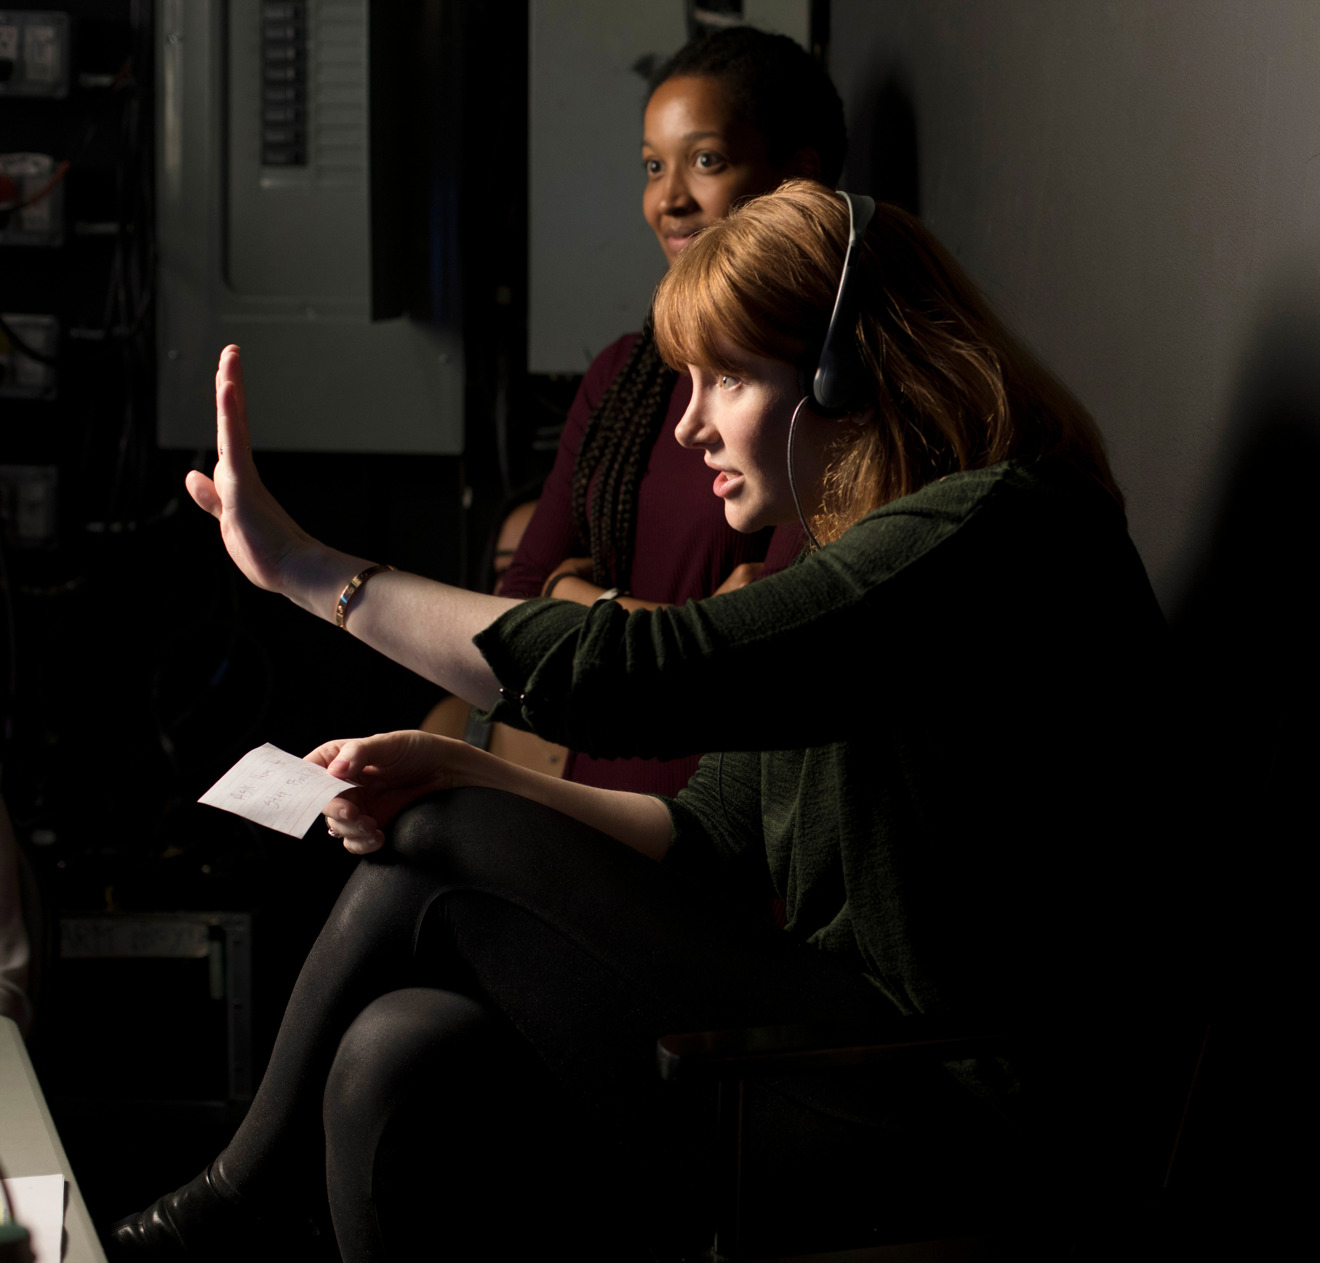 Director Bryce Dallas Howard on the set of